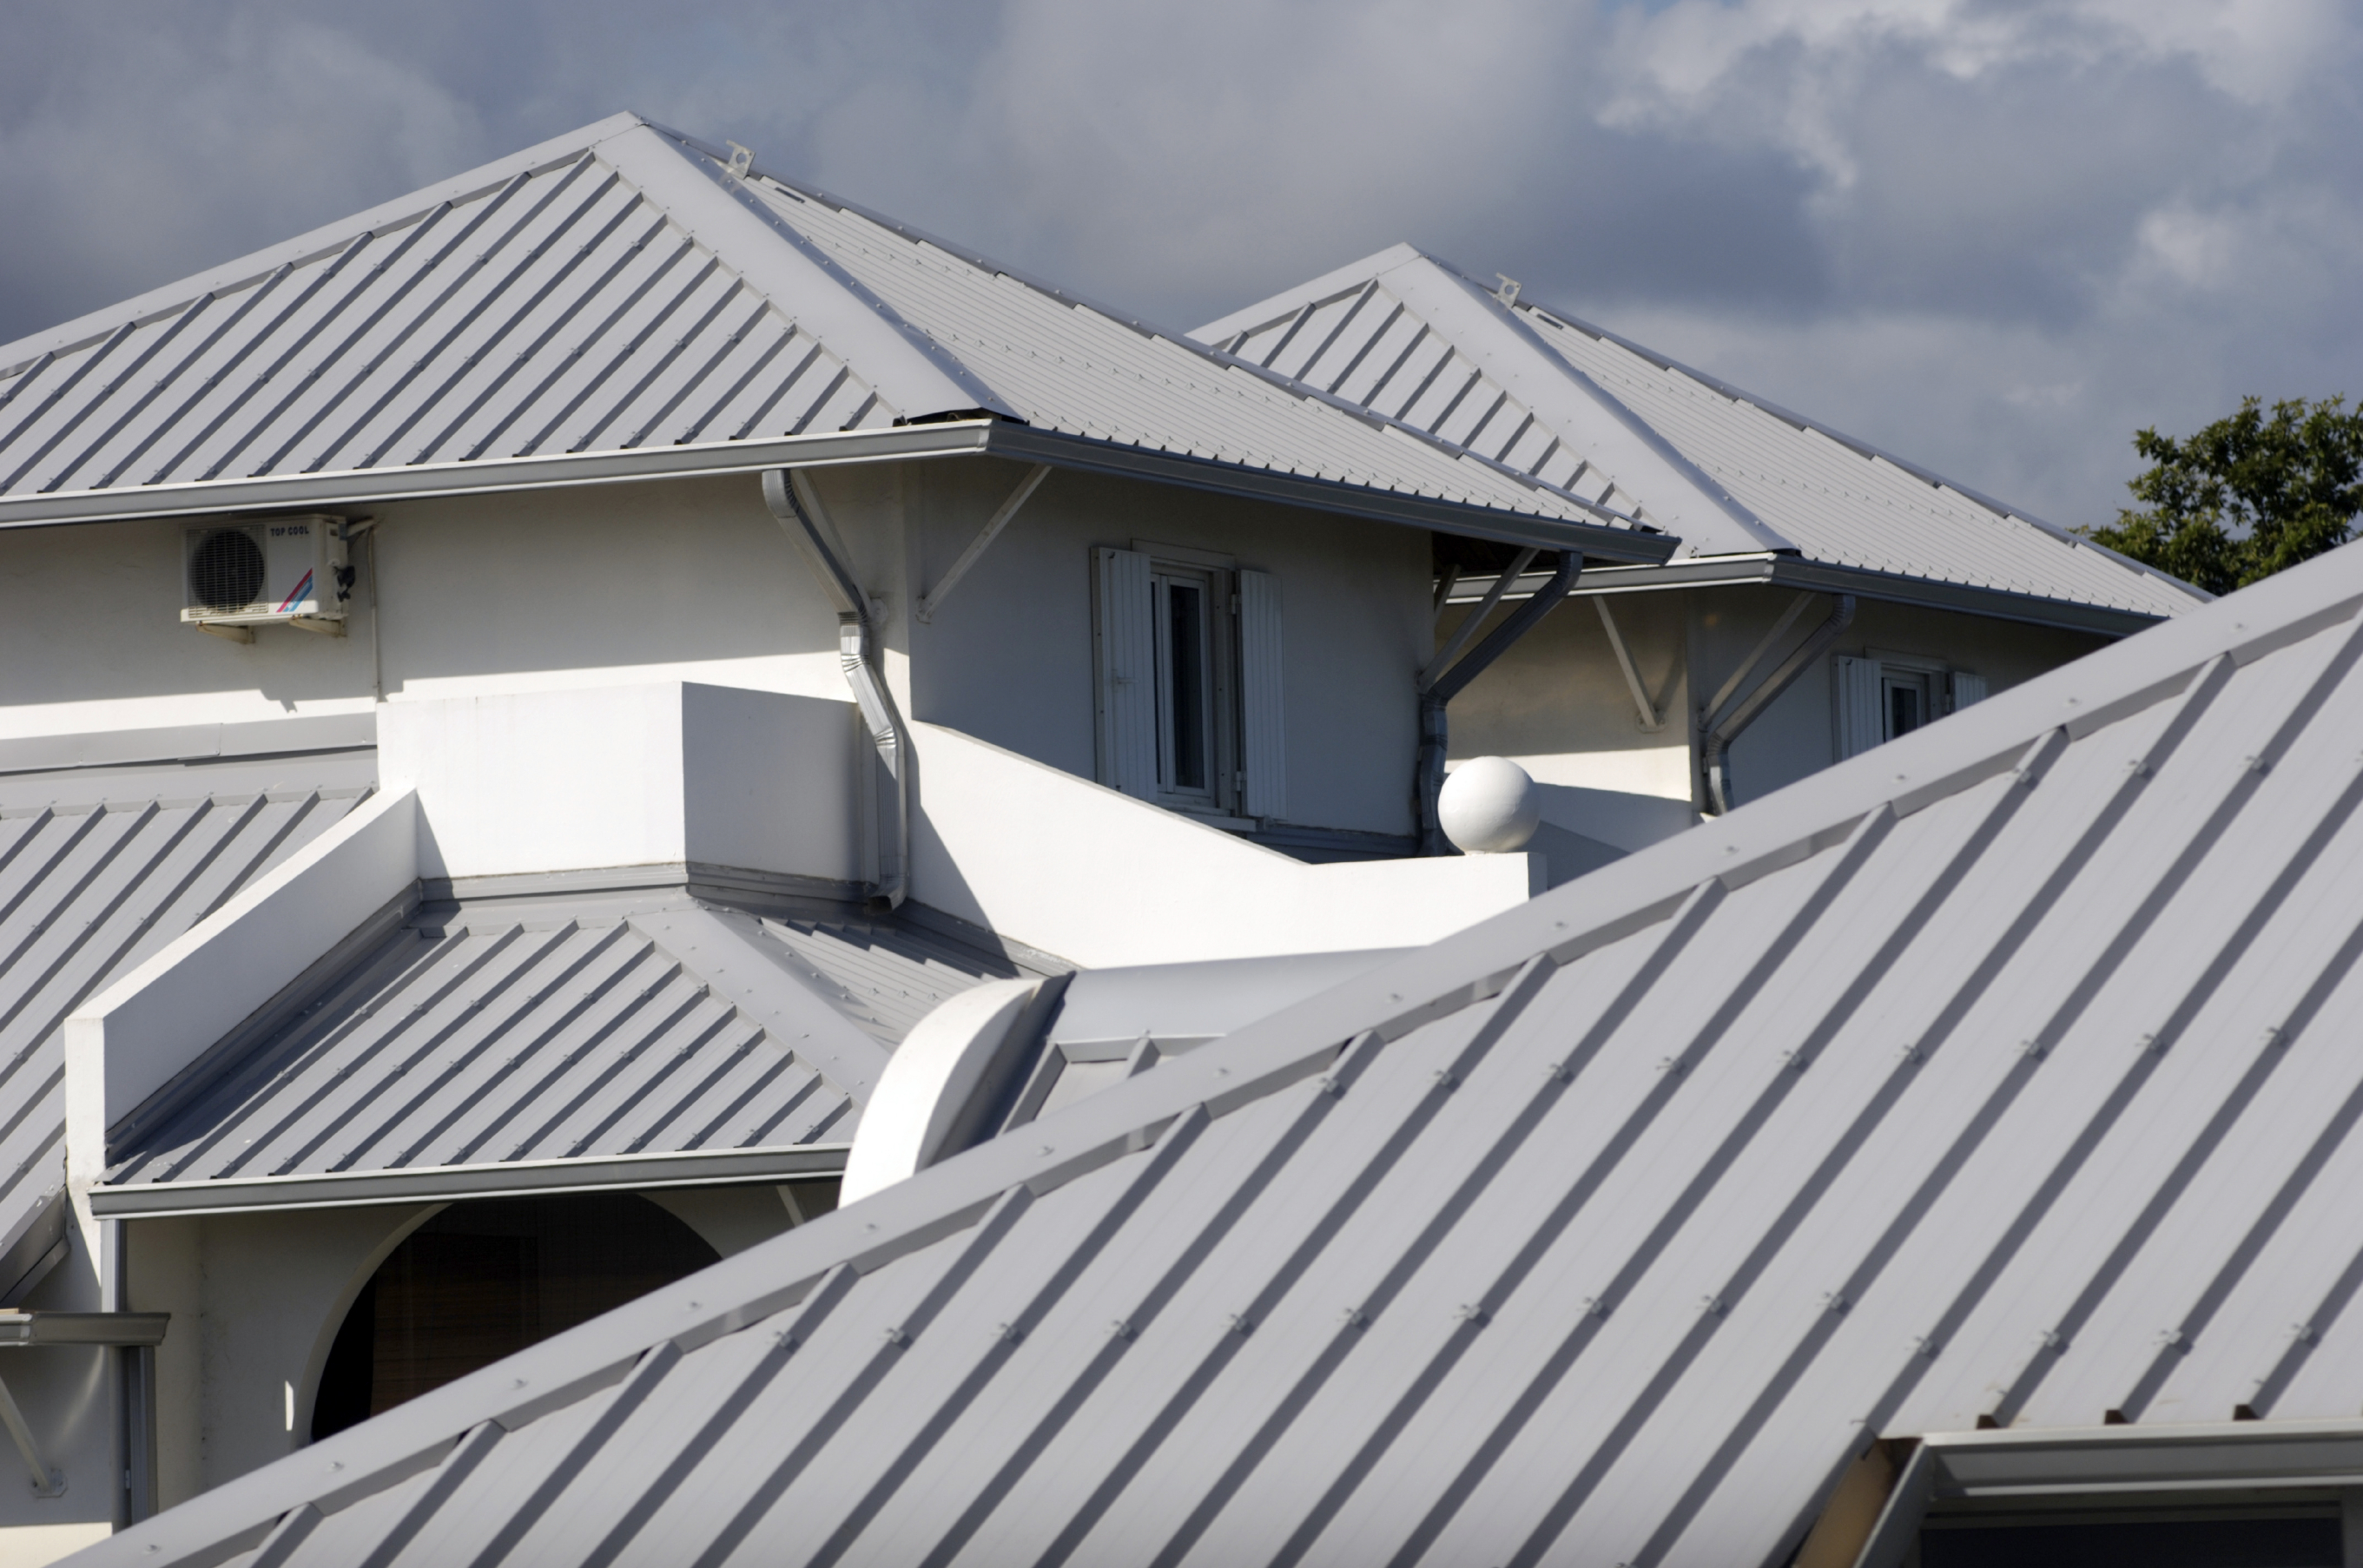 Cool metal roofs are a hot option for homes central for Homes with metal roofs photos